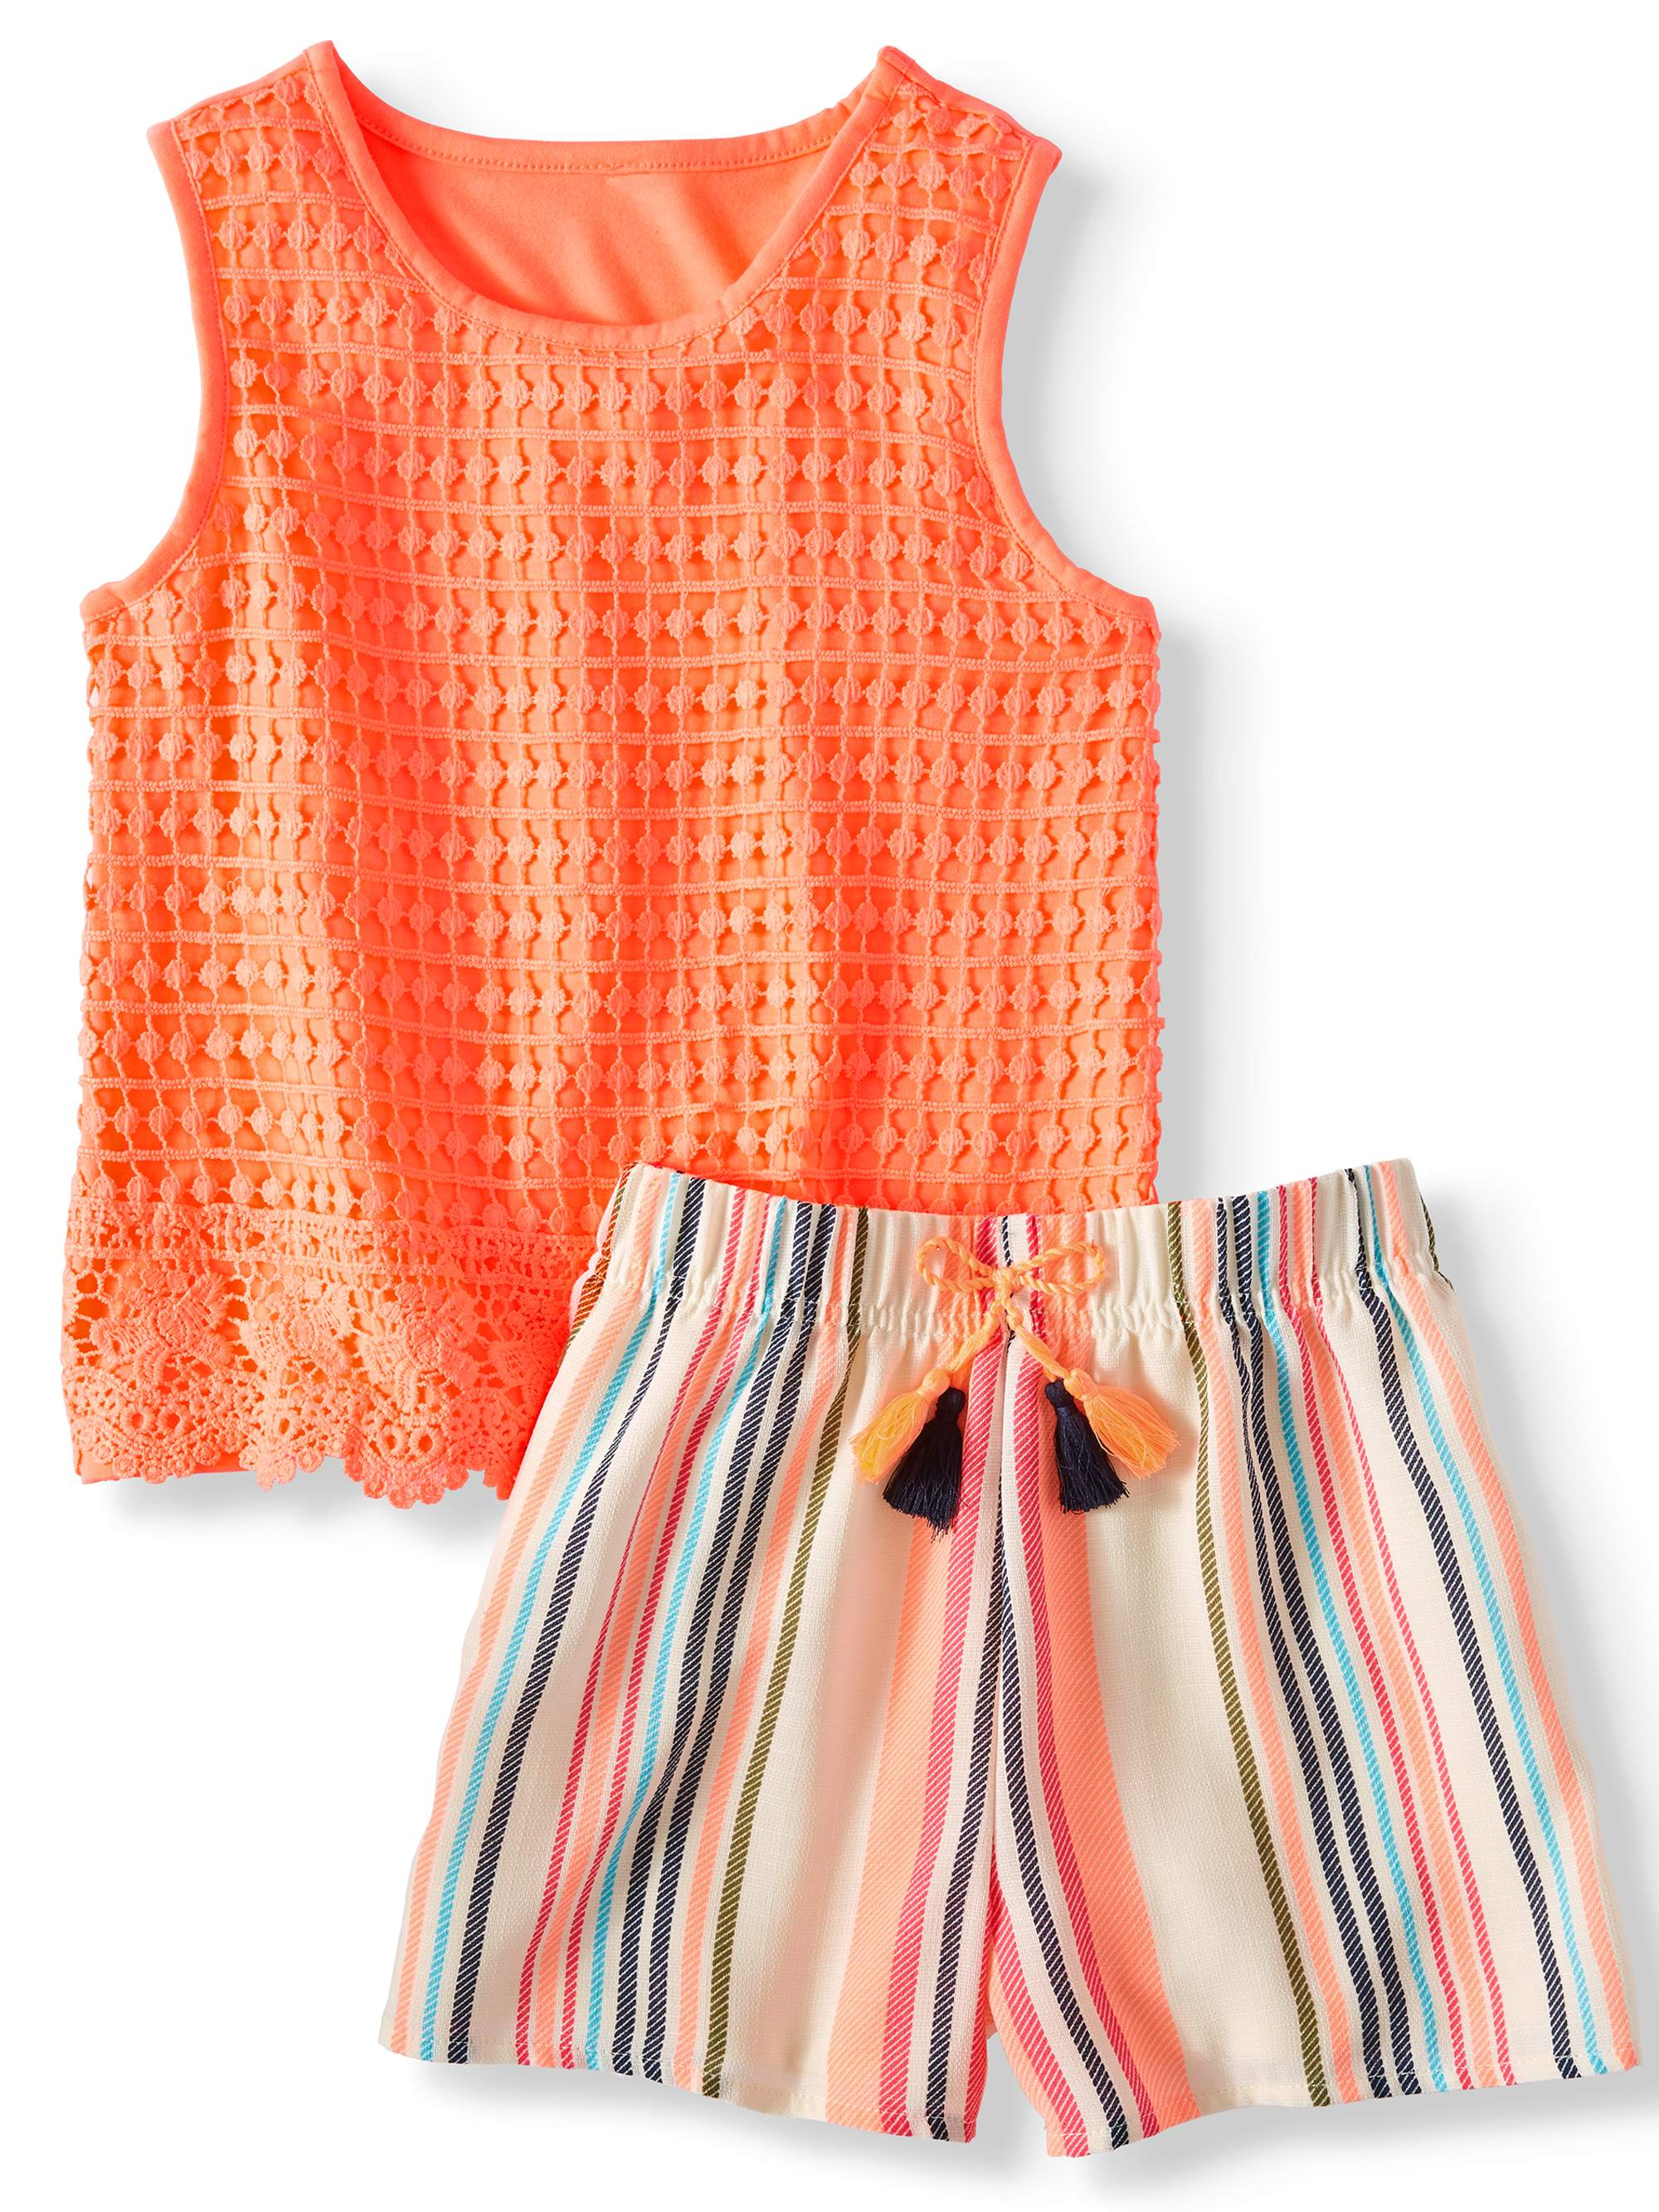 Girls' Crochet Tank Top and Tassel Short, 2-Piece Outfit Set